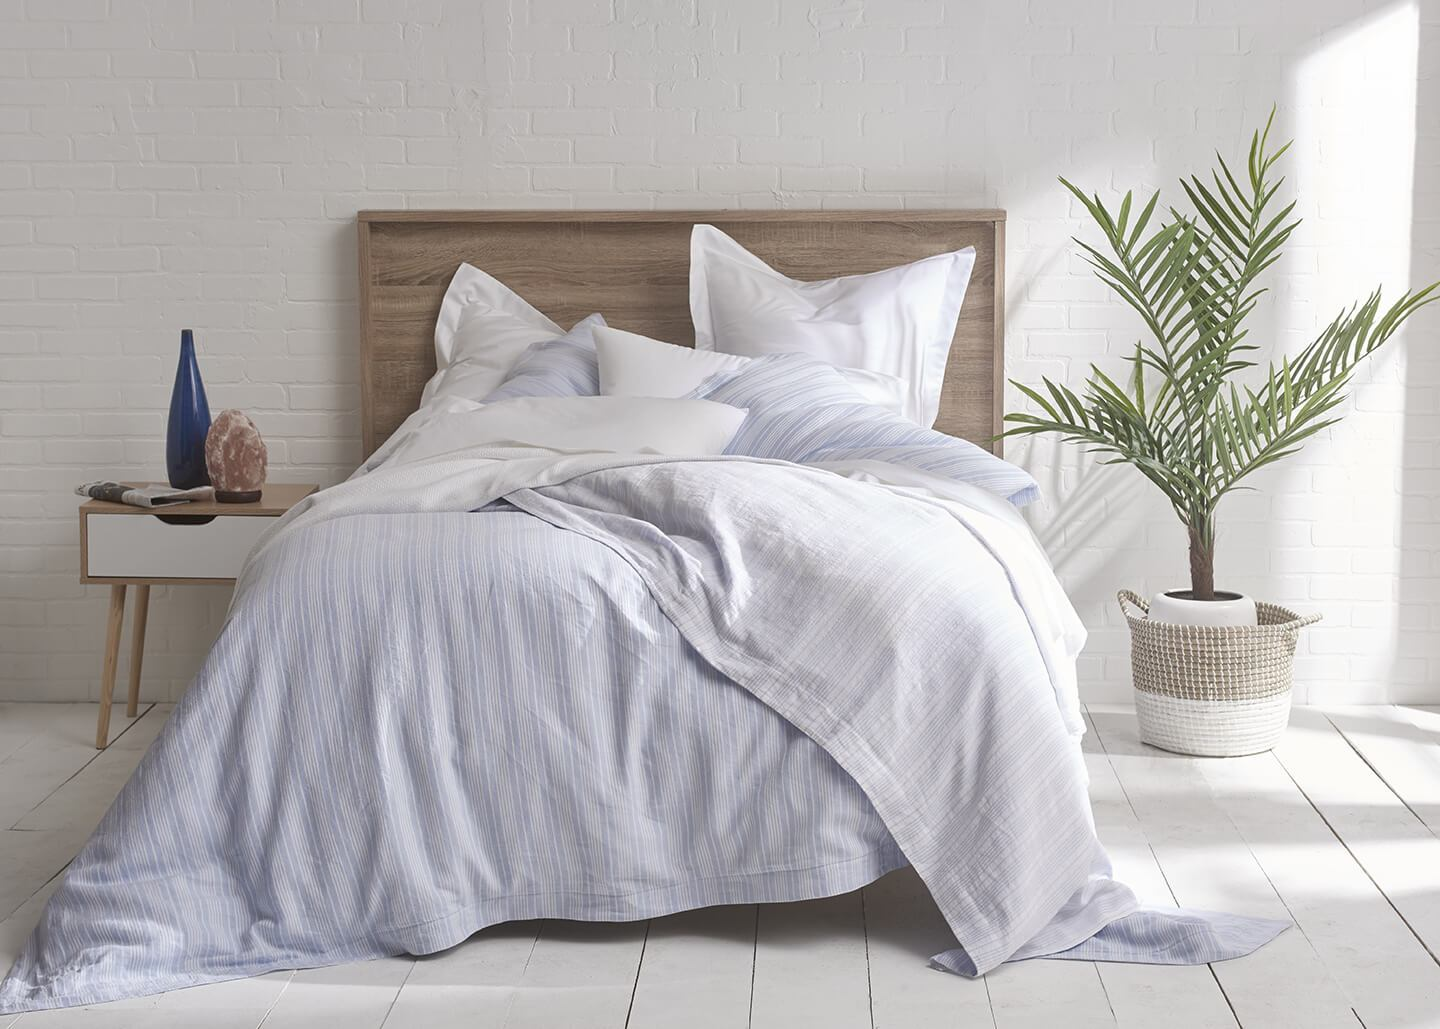 Yarn-Dyed European Linen and Organic Cotton Striped Duvet Set - Organic World Nation